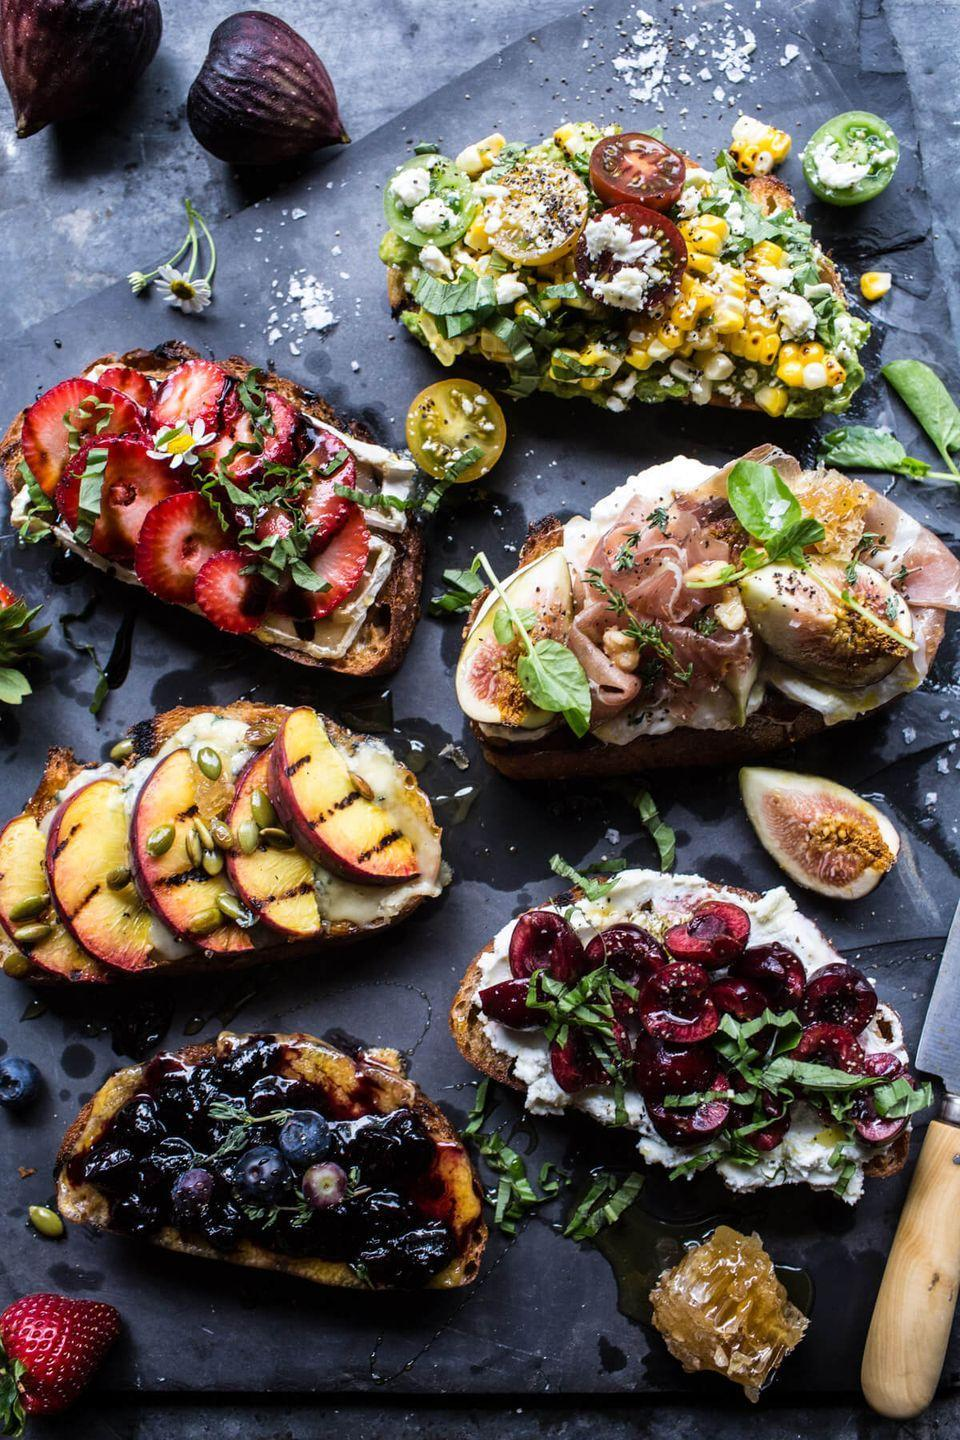 """<p>If it screams summer — think: peaches, strawberries, or tomatoes — then it deserves a spot on these mini toasts.</p><p><em><a href=""""https://www.halfbakedharvest.com/summer-crostini-6-ways/"""" rel=""""nofollow noopener"""" target=""""_blank"""" data-ylk=""""slk:Get the recipe from Half Baked Harvest »"""" class=""""link rapid-noclick-resp"""">Get the recipe from Half Baked Harvest »</a></em></p>"""